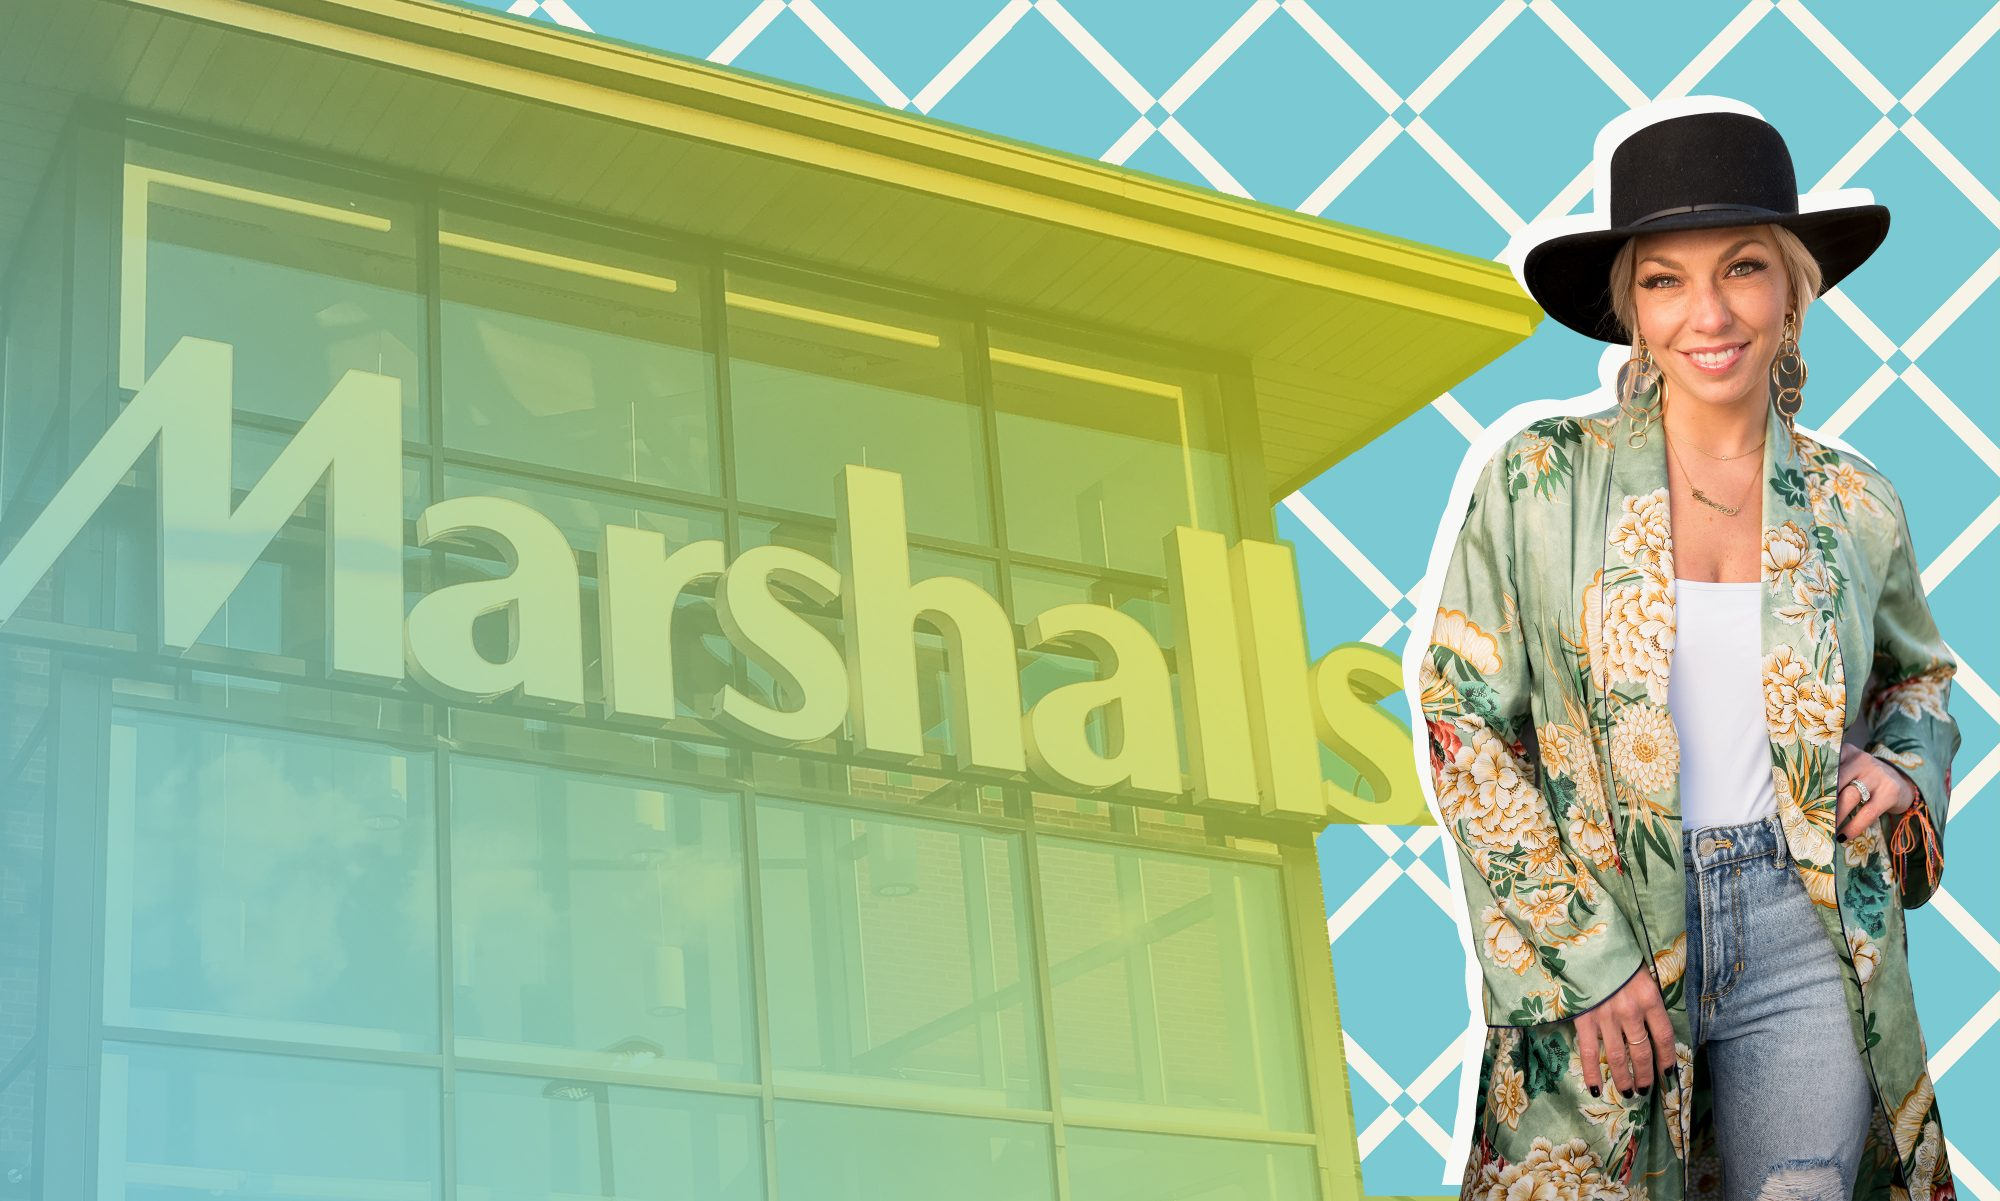 Marshalls Shopping Tips from a Celeb Stylist, Melissa Garcia